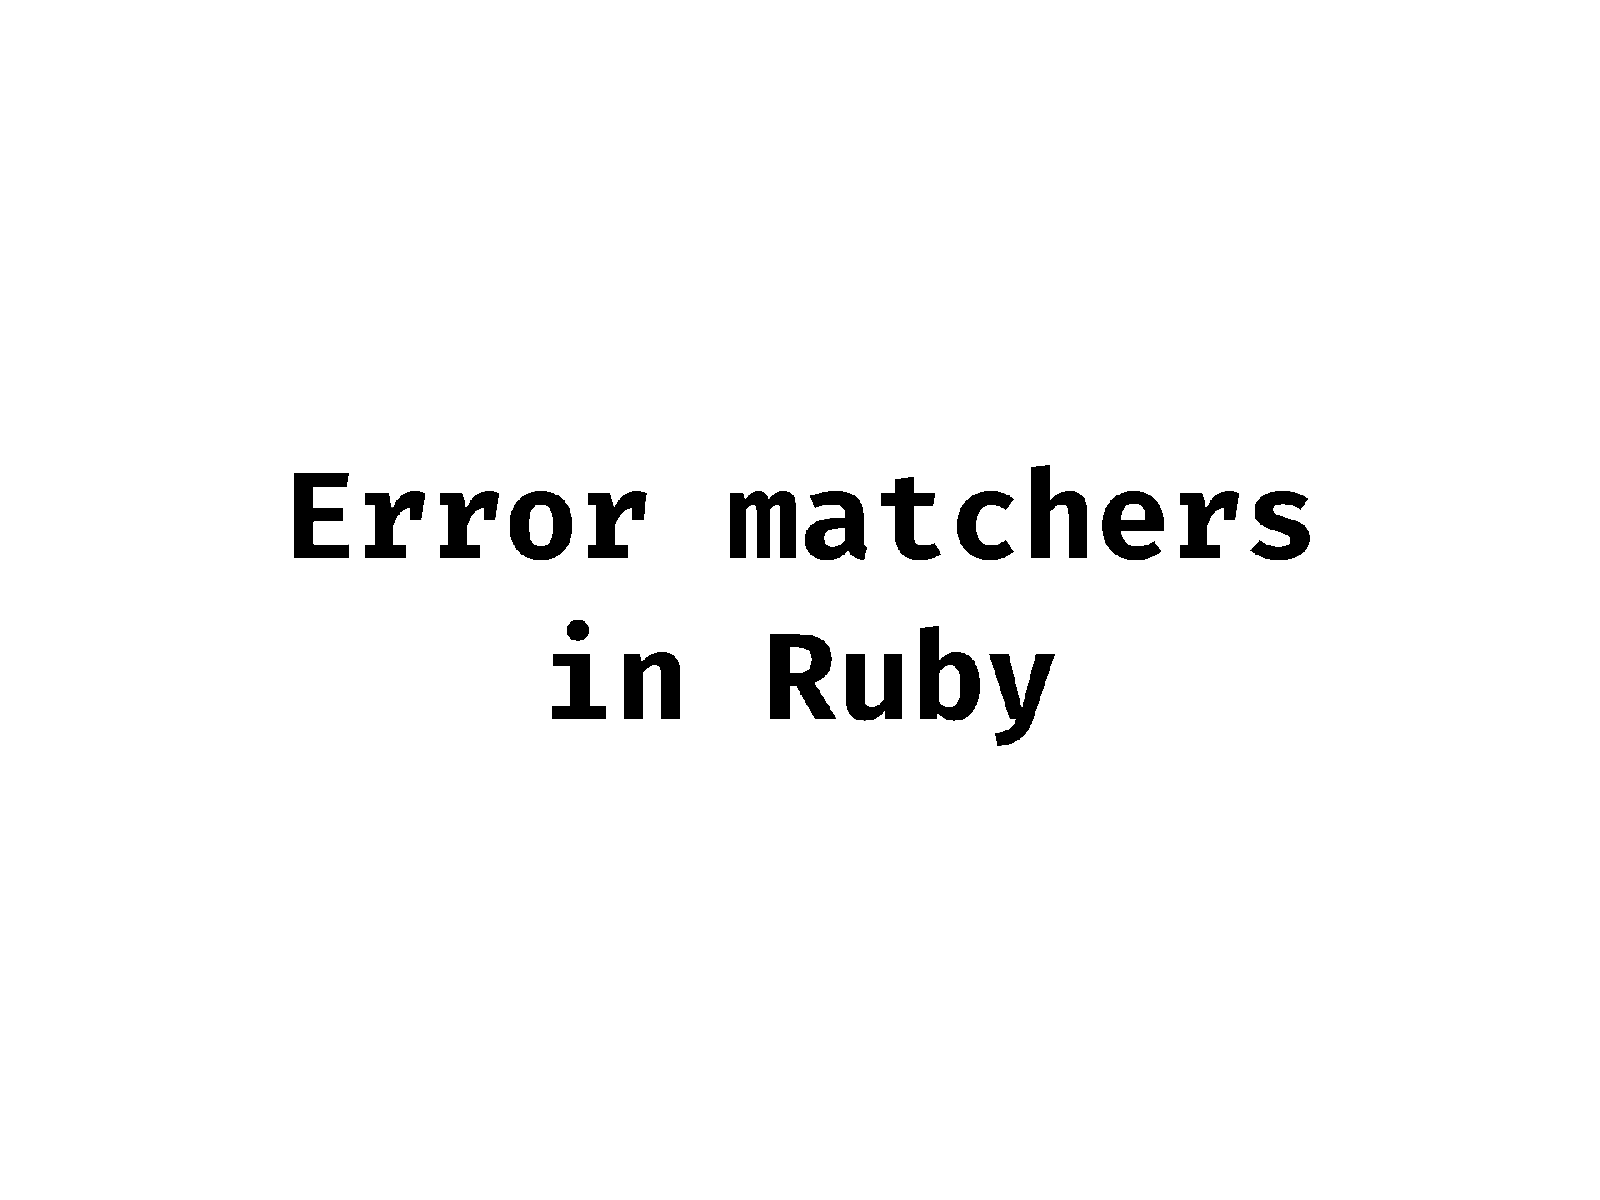 Error matchers in Ruby